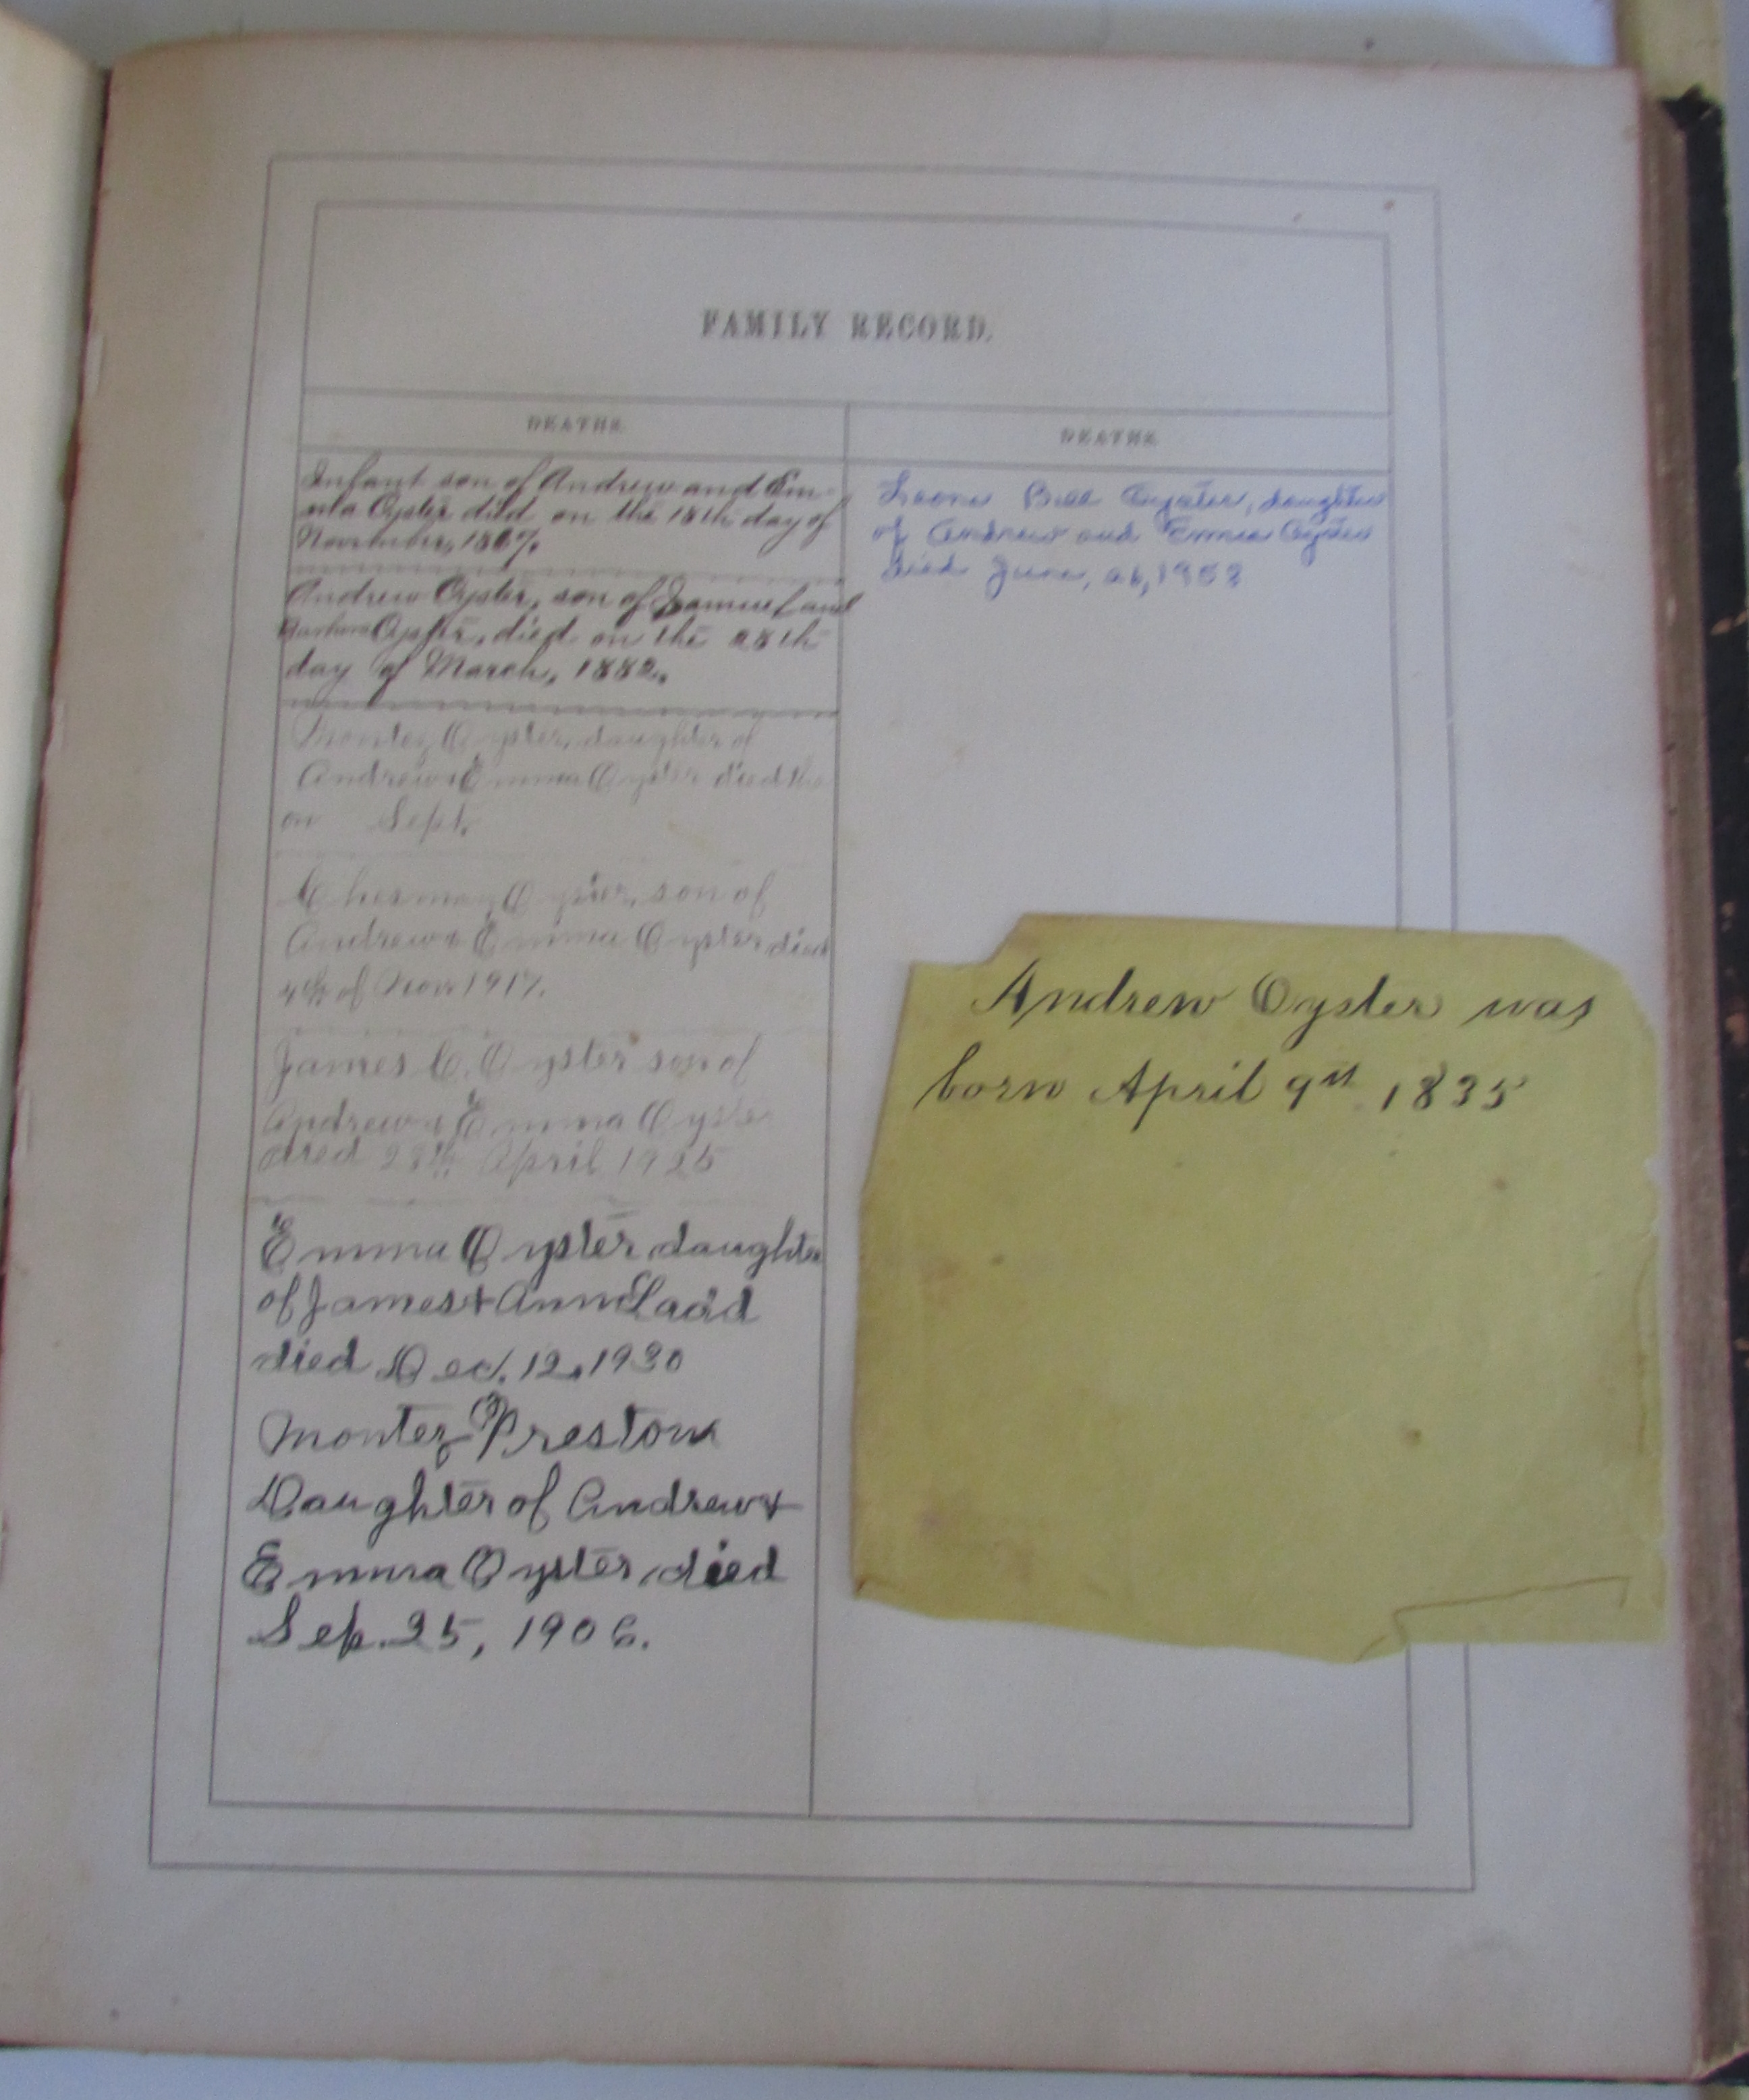 Third inscribed Family Record page with note